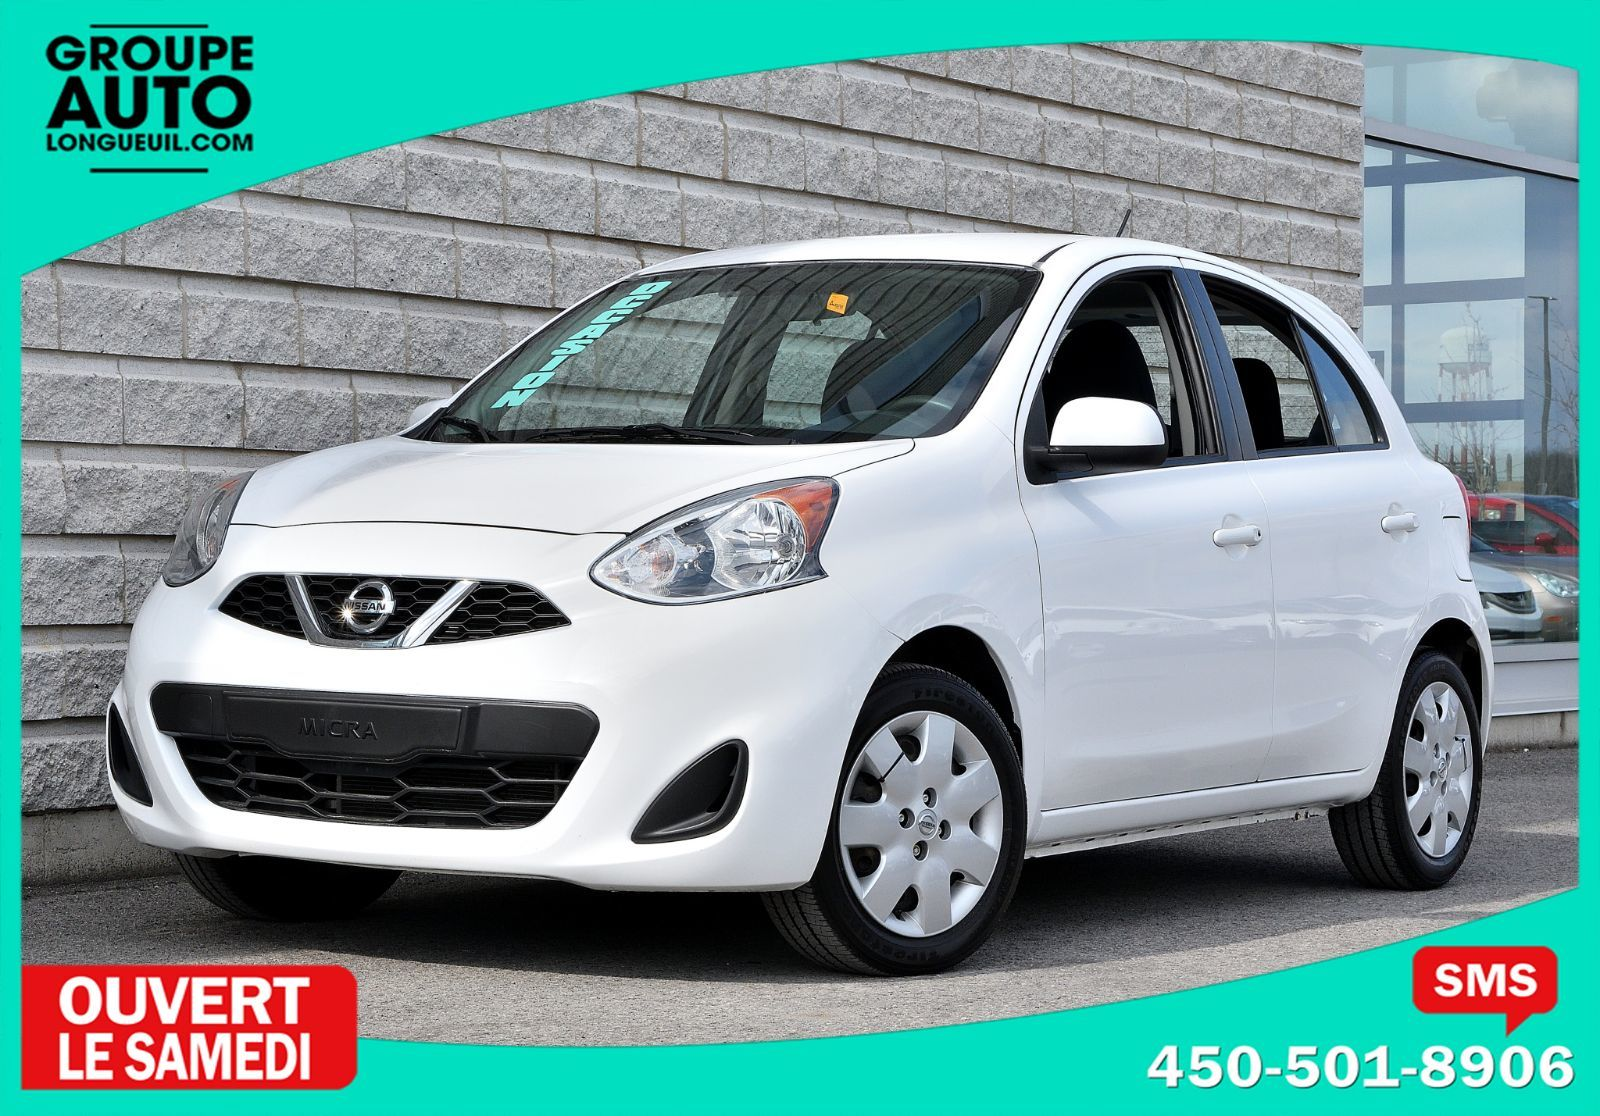 2015 nissan micra sv autom a c blanche 47000km d 39 occasion longueuil inventaire d 39 occasion. Black Bedroom Furniture Sets. Home Design Ideas